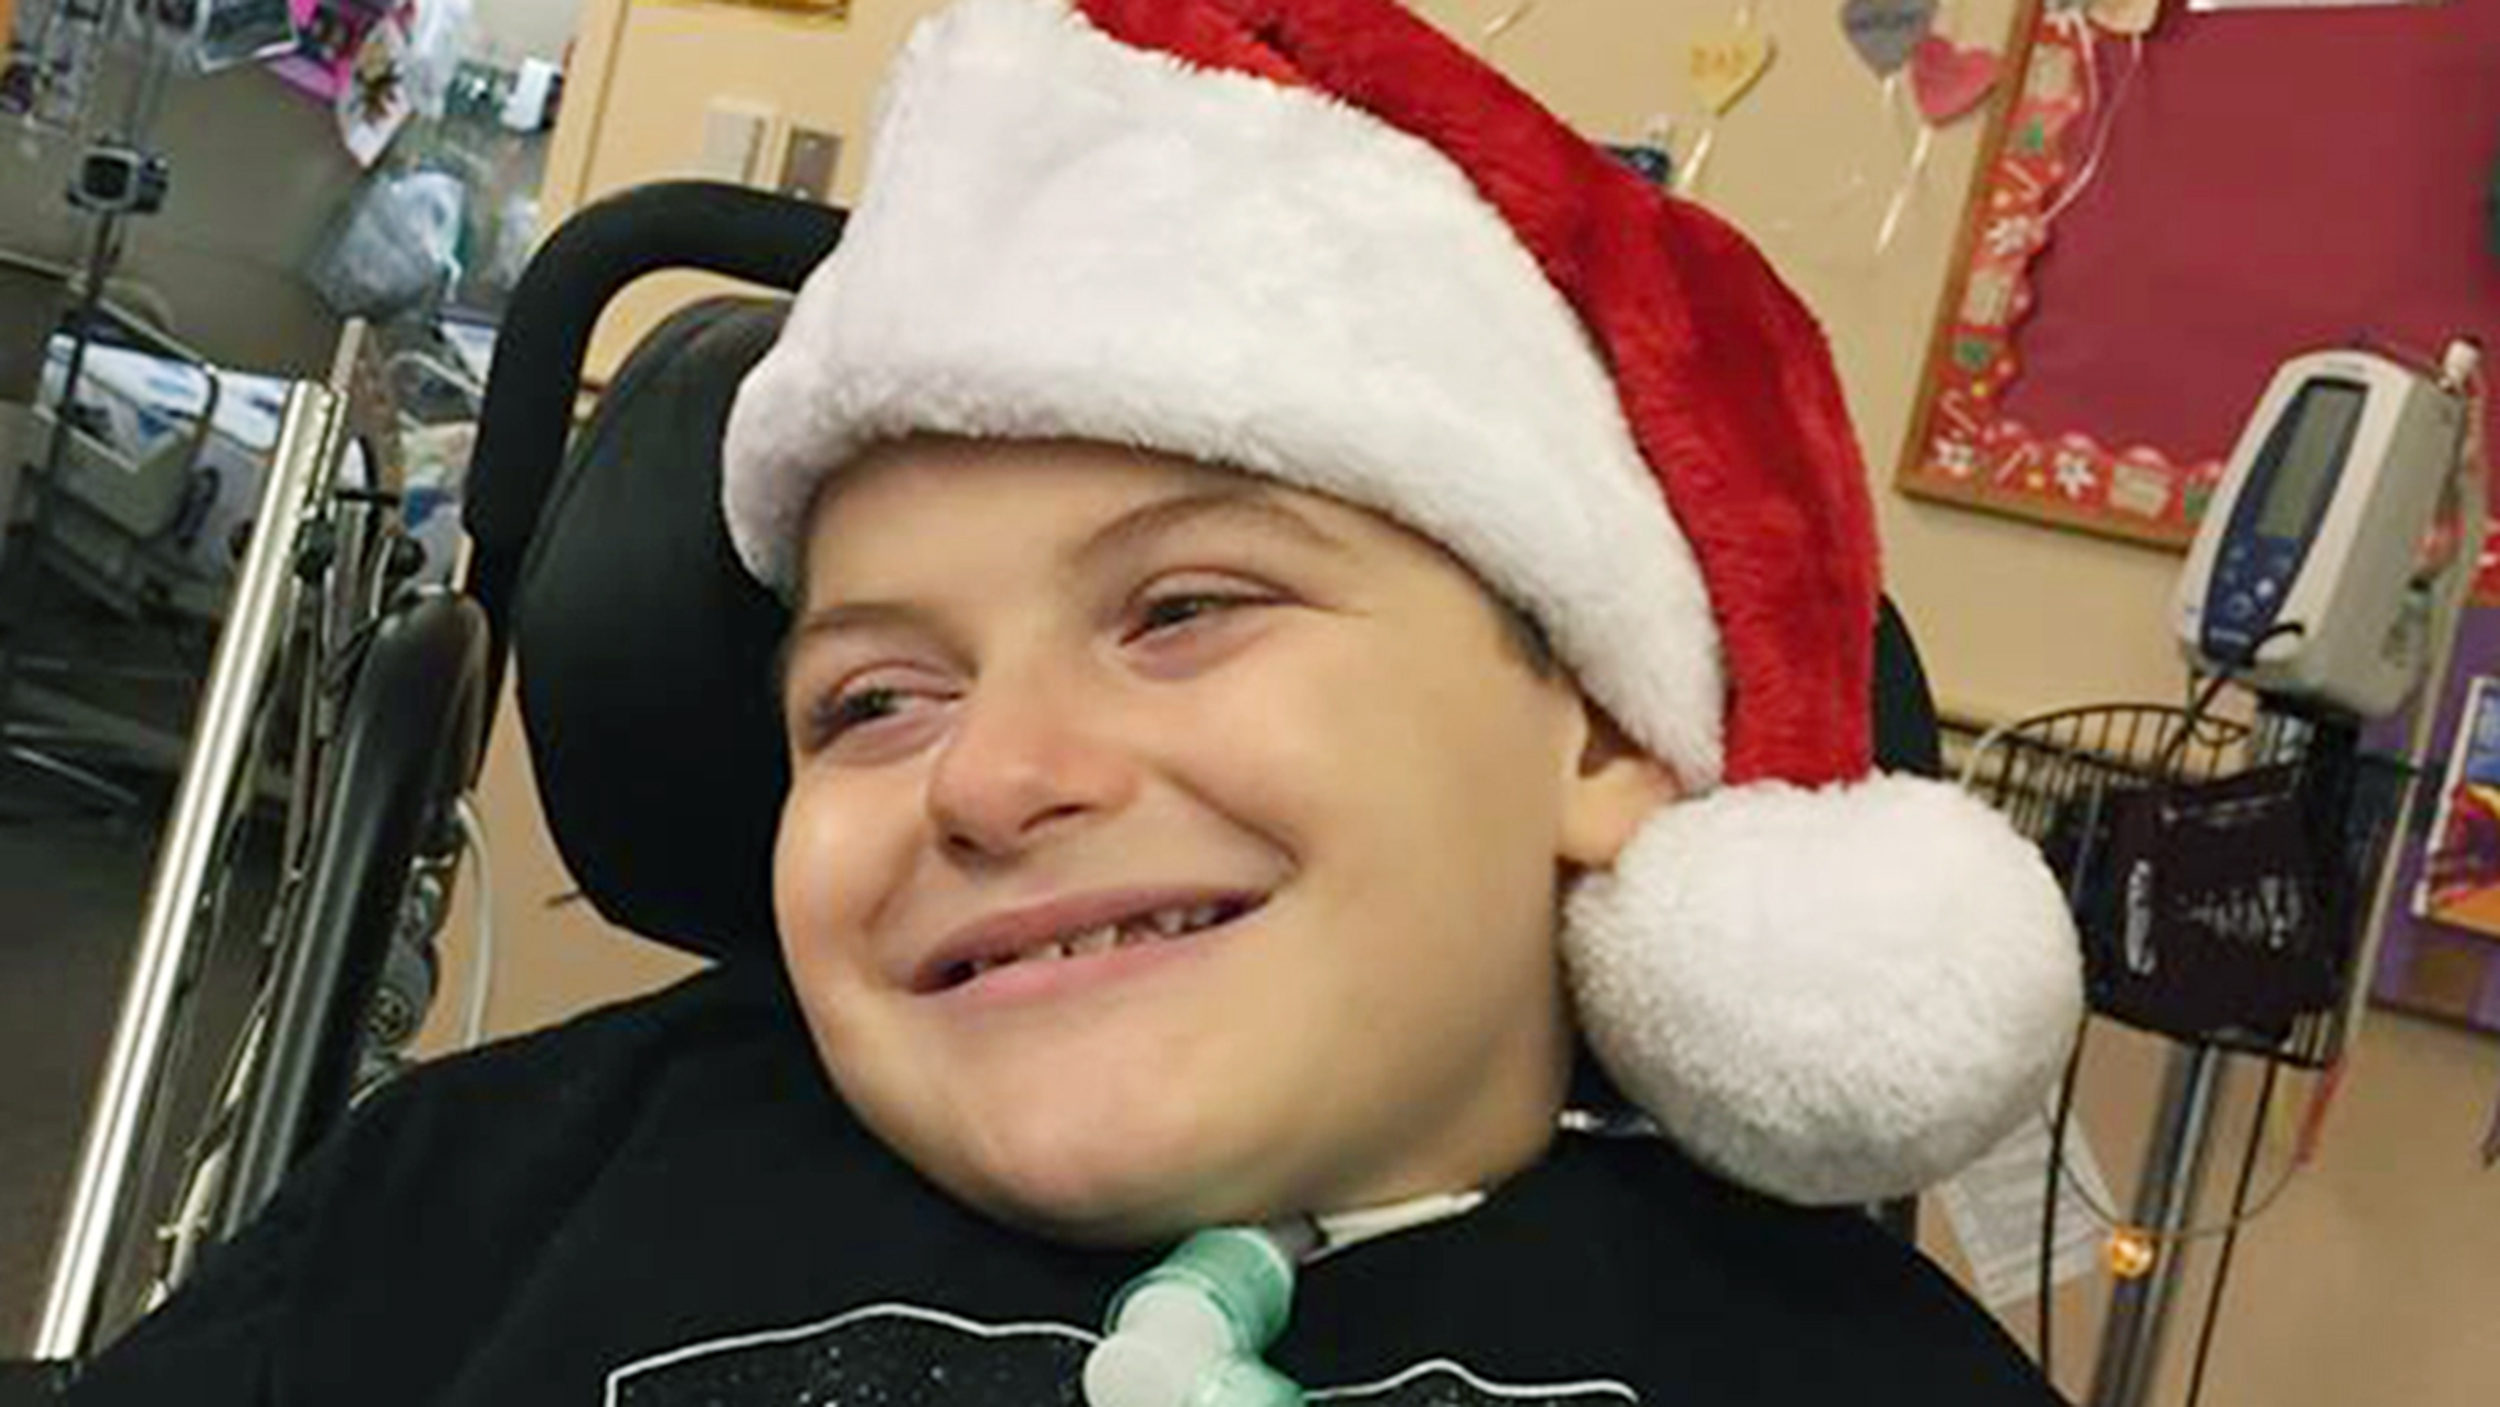 8-year-old terminally ill boy wants lots of Christmas cards